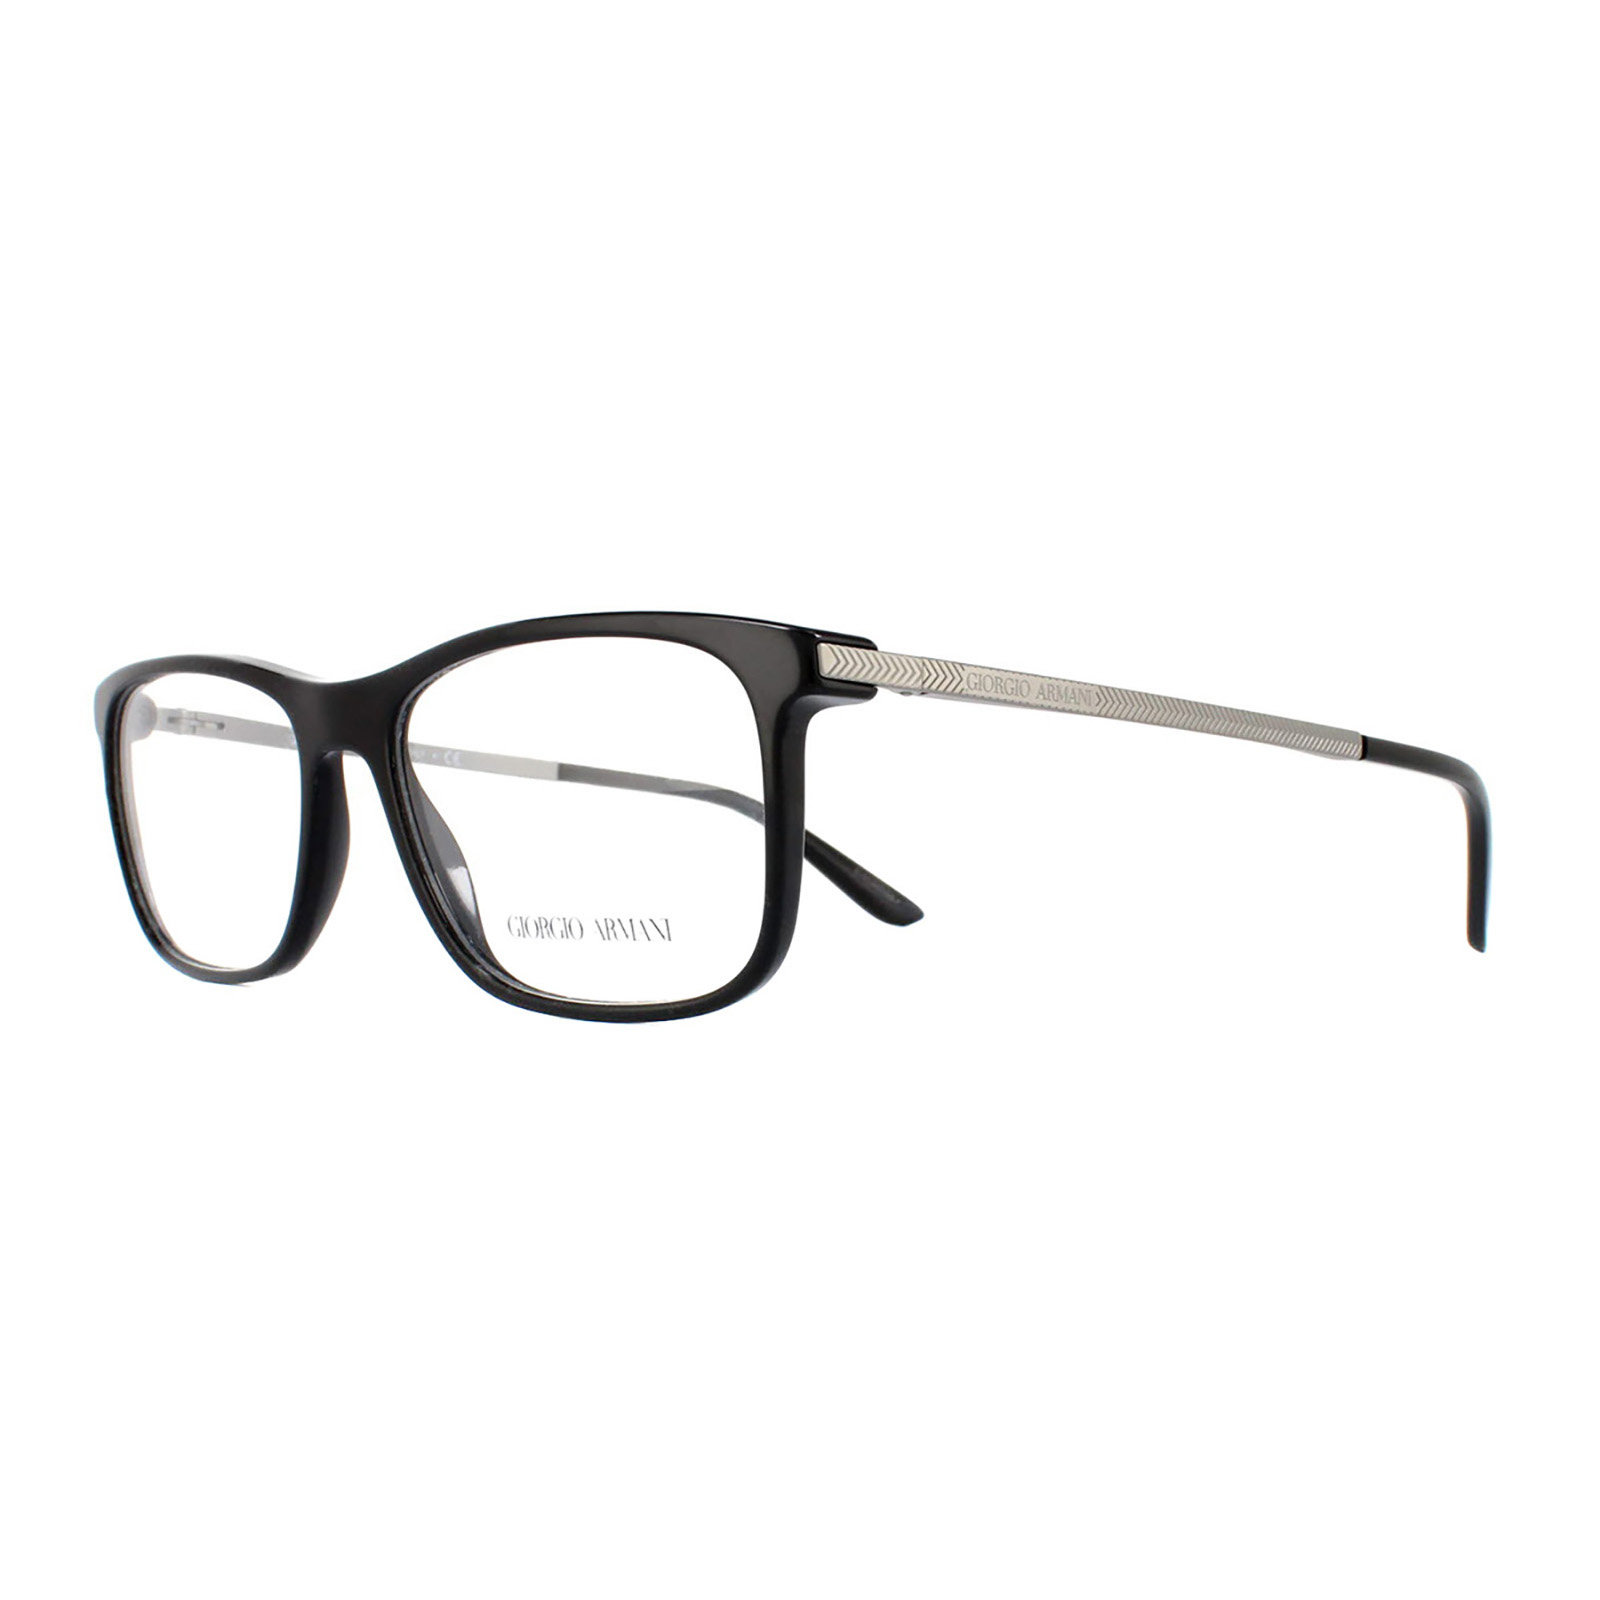 5491b34f444 Sentinel Giorgio Armani Glasses Frames 7087 5017 Black Men 52mm